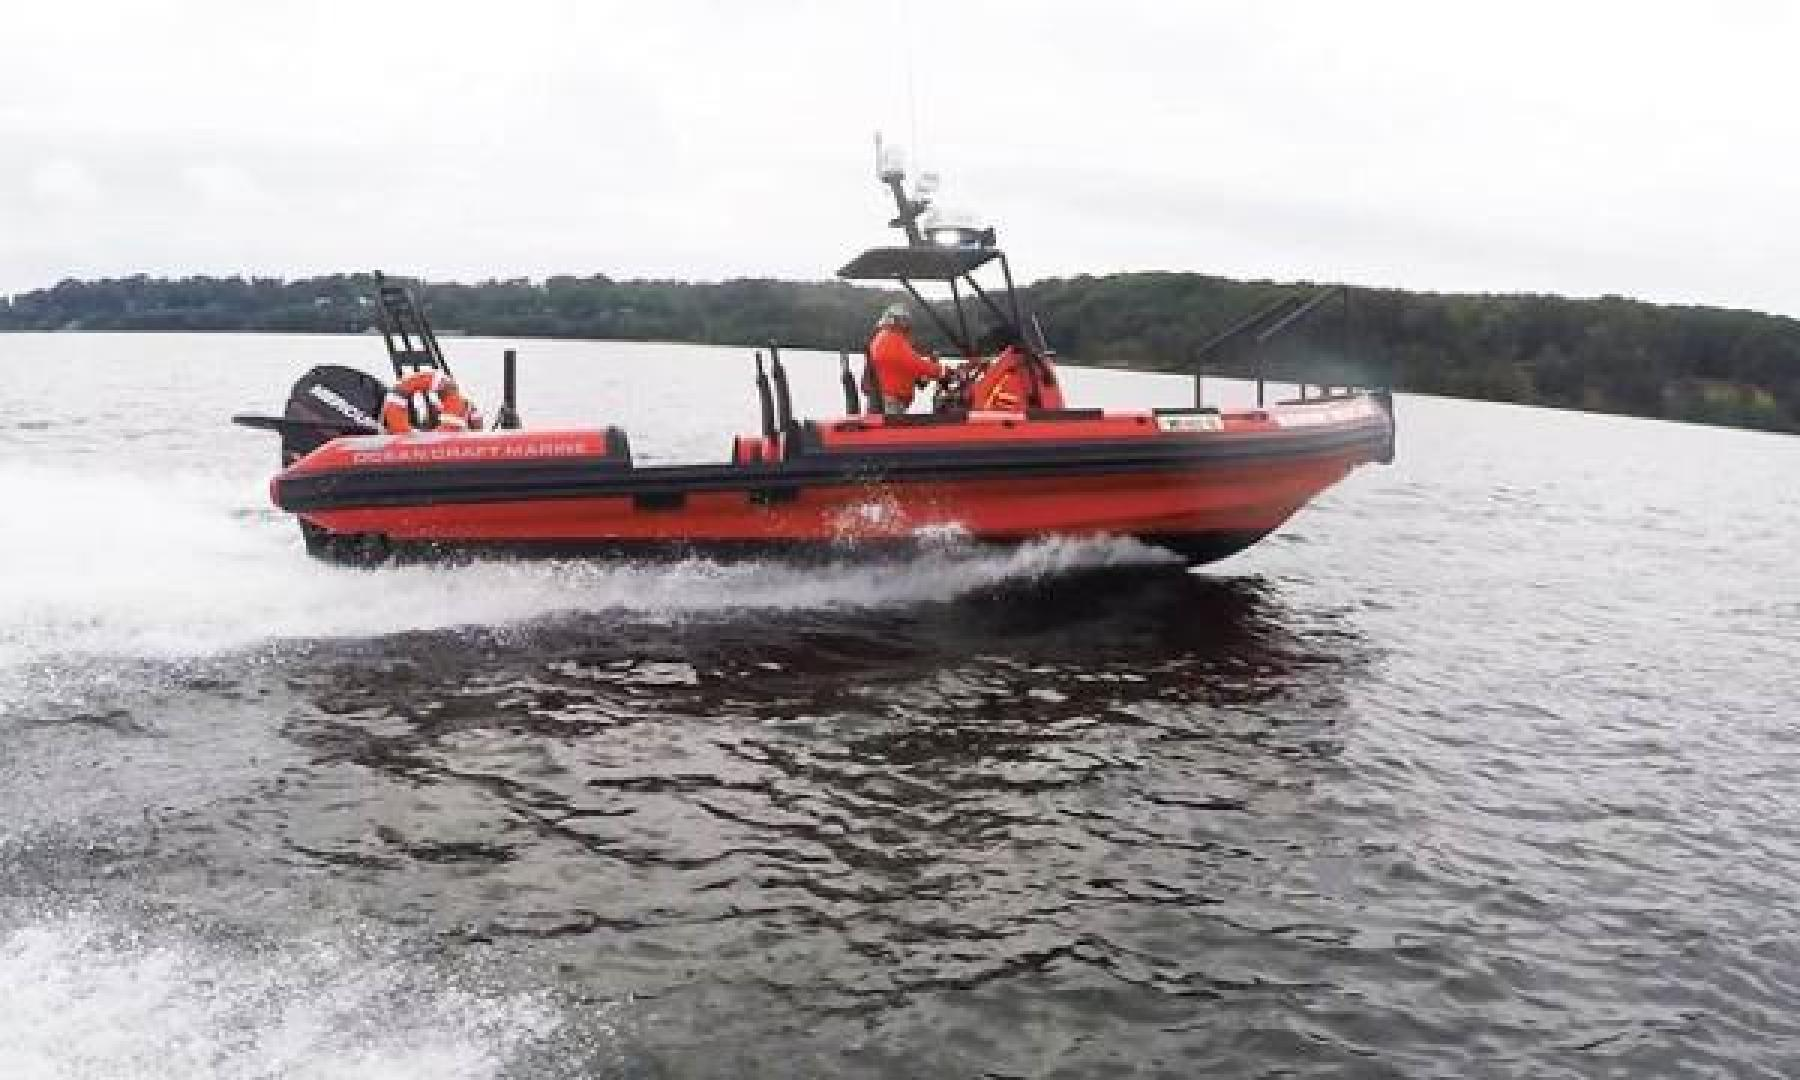 Ocean Craft Marine-9.5M RHIB Professional Search and Rescue 2020-Ocean Craft Marine 9.5M RHIB Professional Search and Rescue Fort Lauderdale-Florida-United States-1522799   Thumbnail